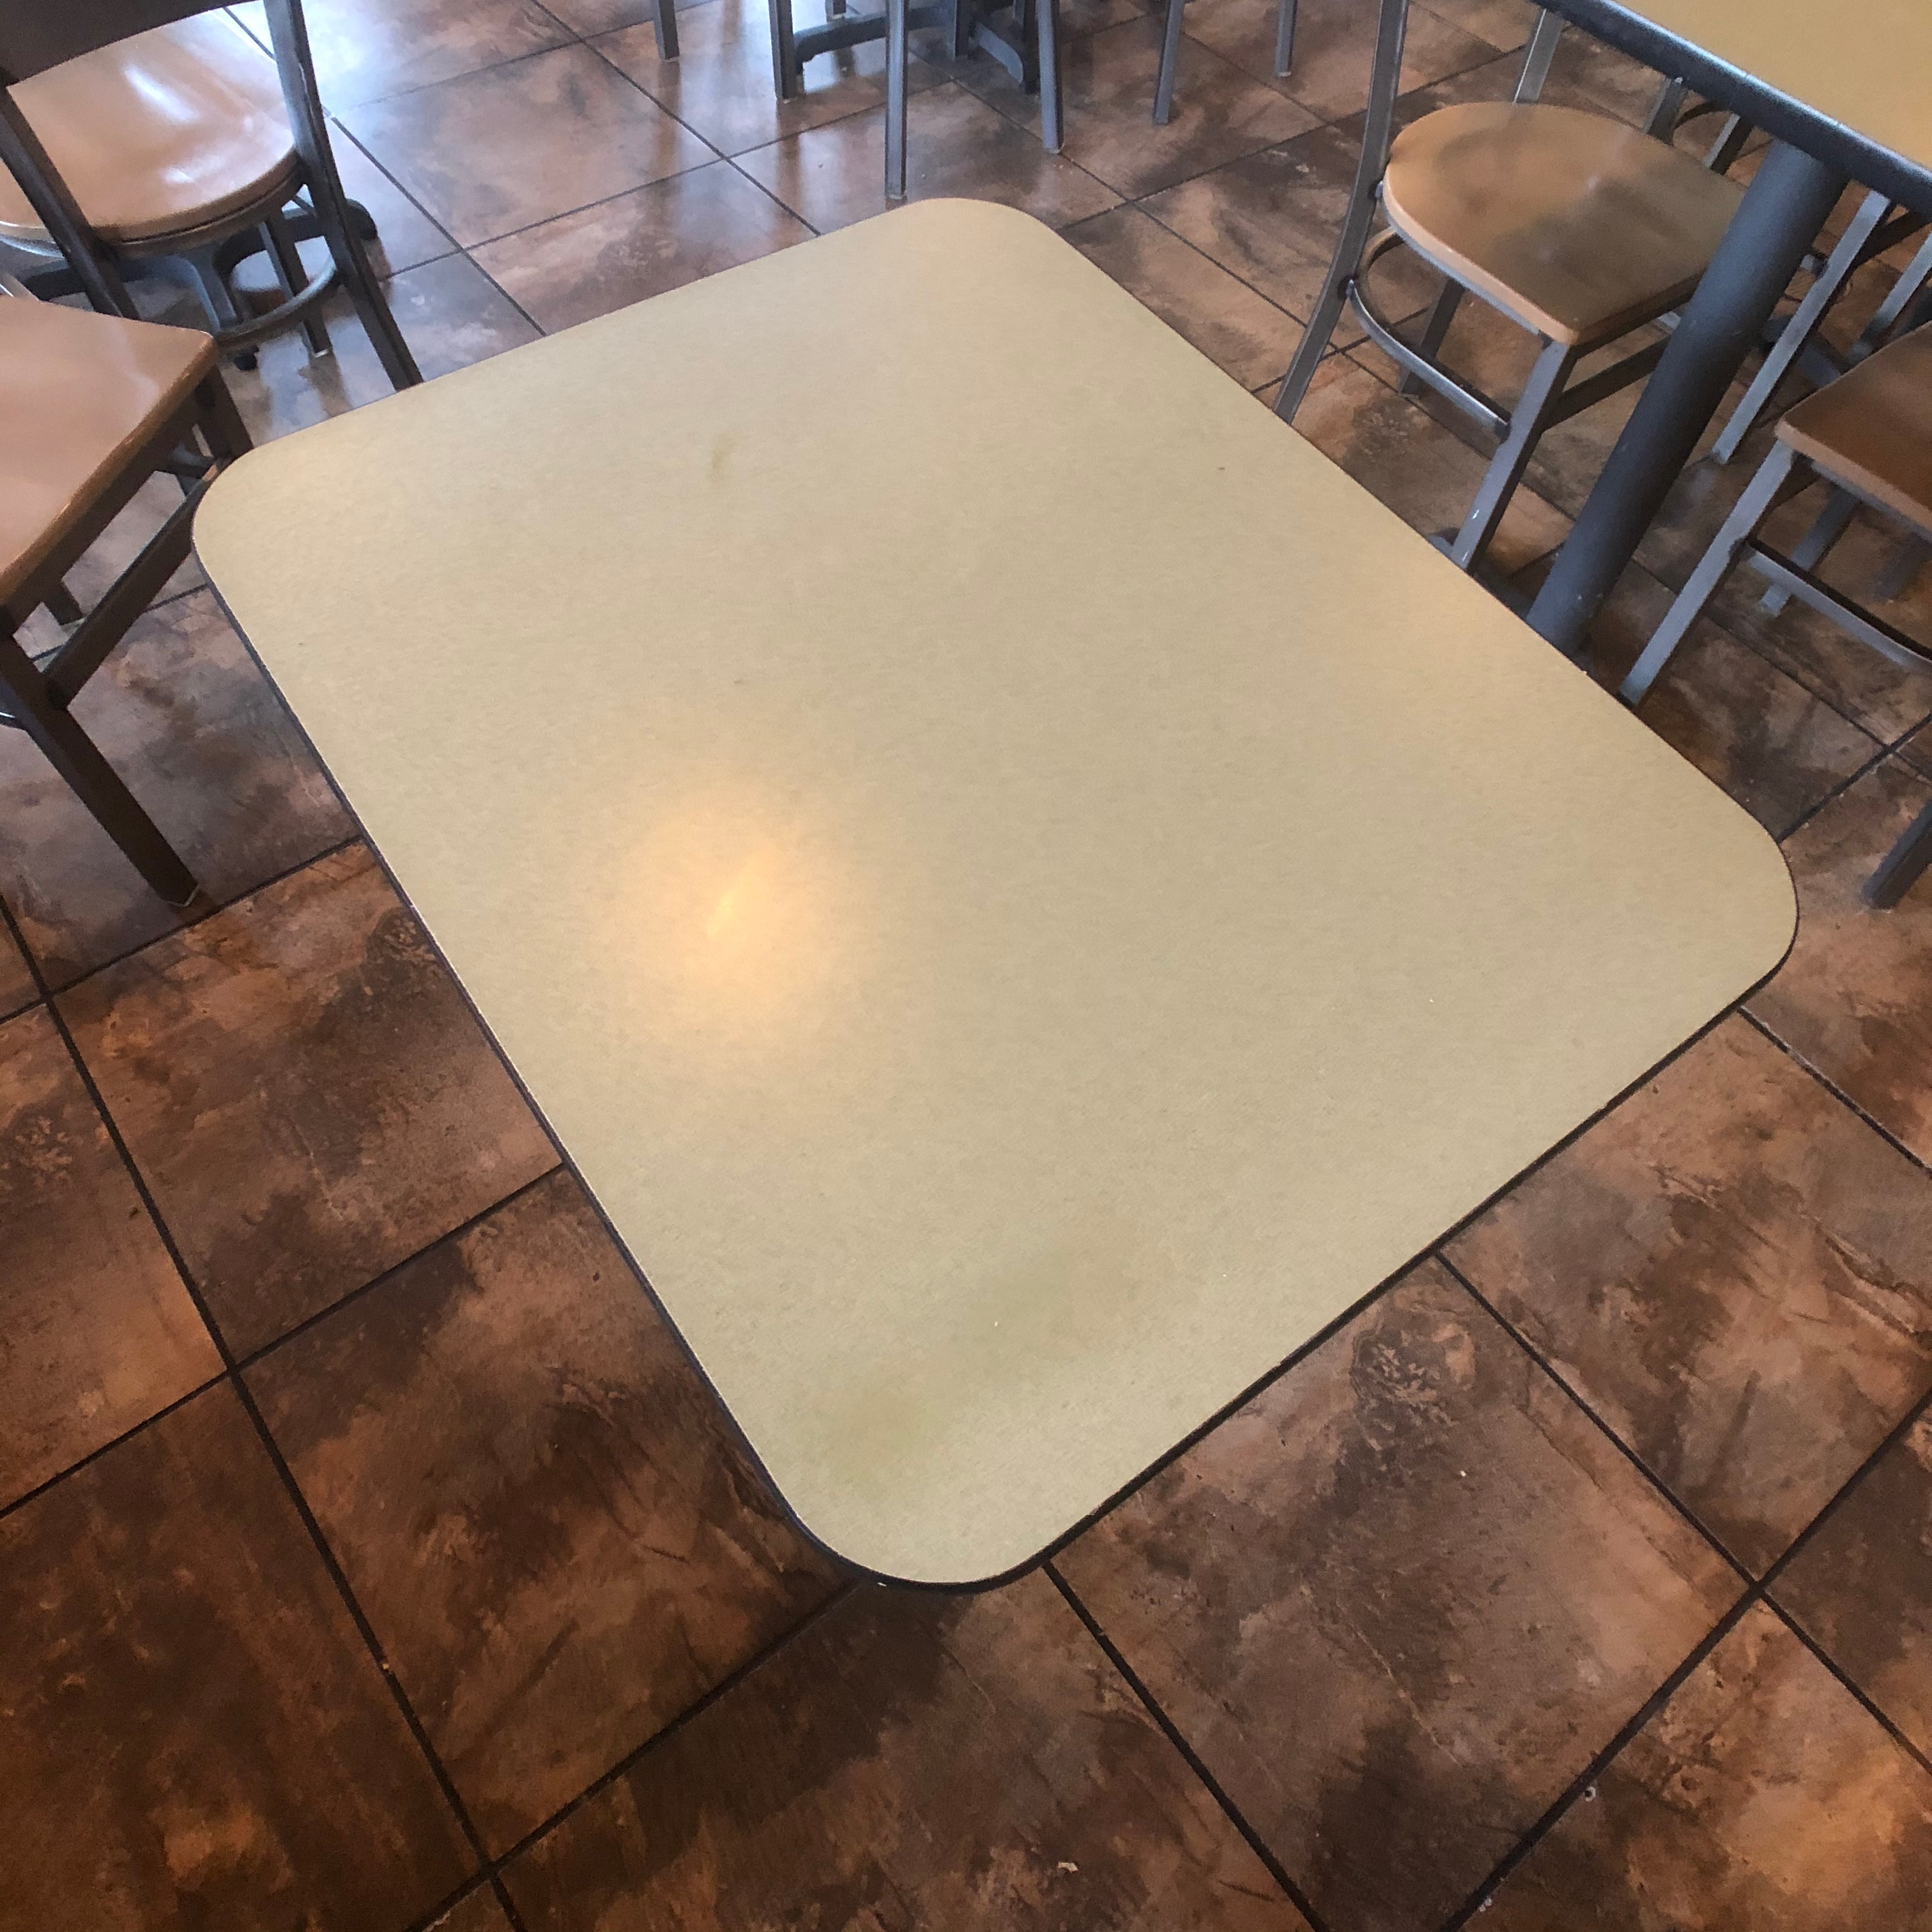 "(10) 2-Person Tables with (20) Walsh Simmons Seating Chairs, Approx. 2'6"" L x 24"" W - Image 2 of 5"